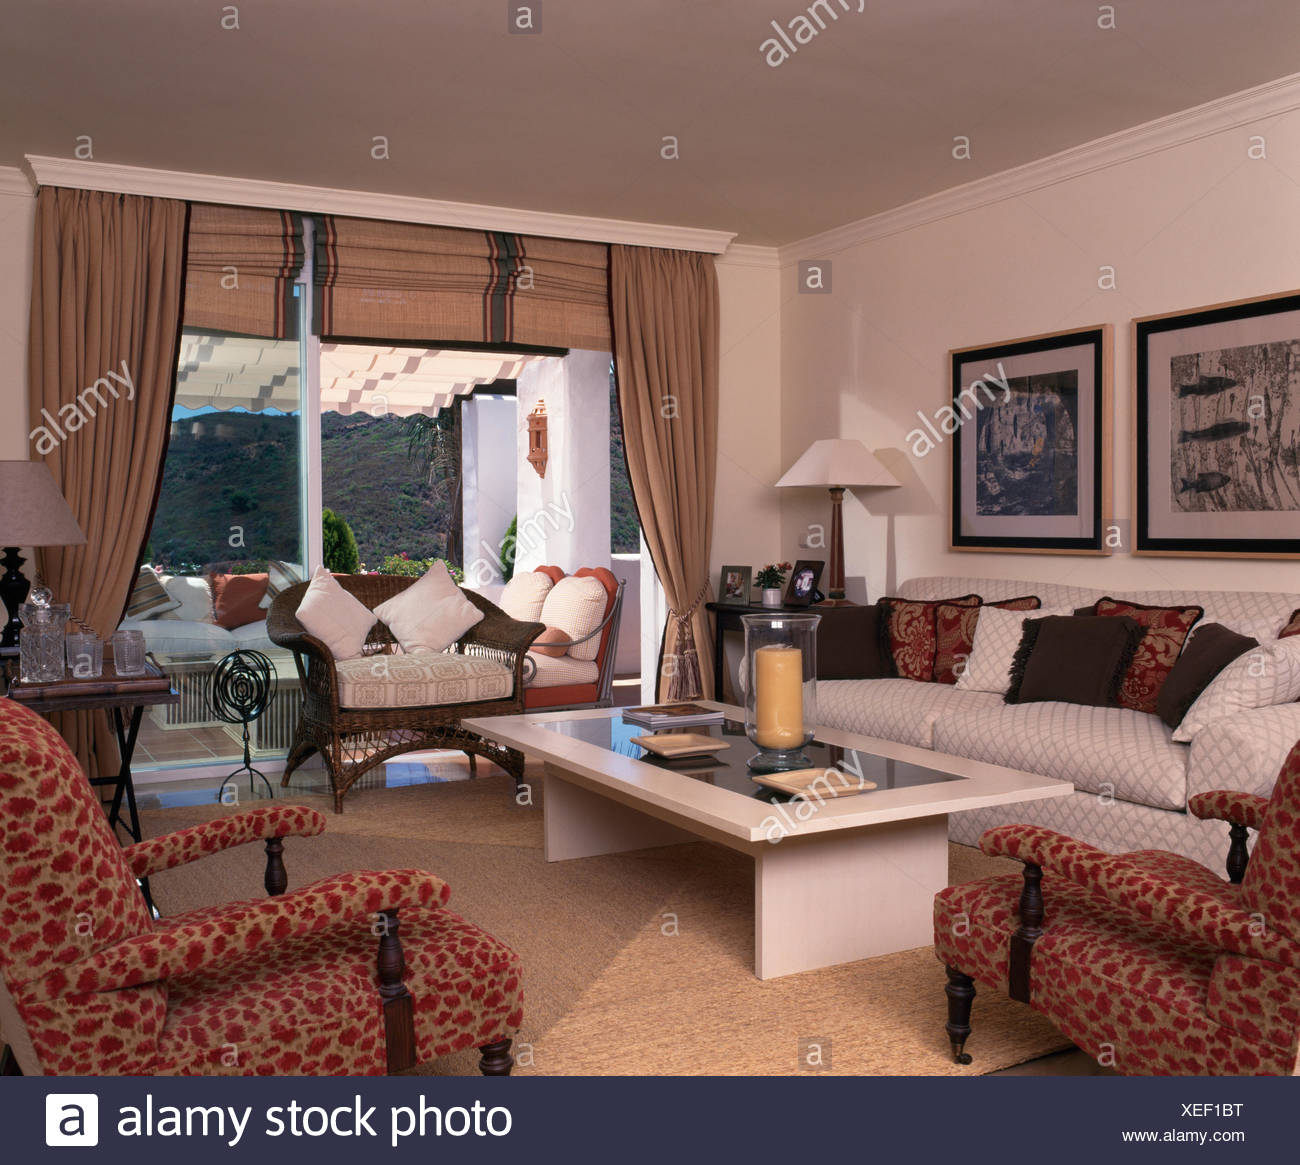 Patterned Armchairs And White Coffee Table In Modern Spanish